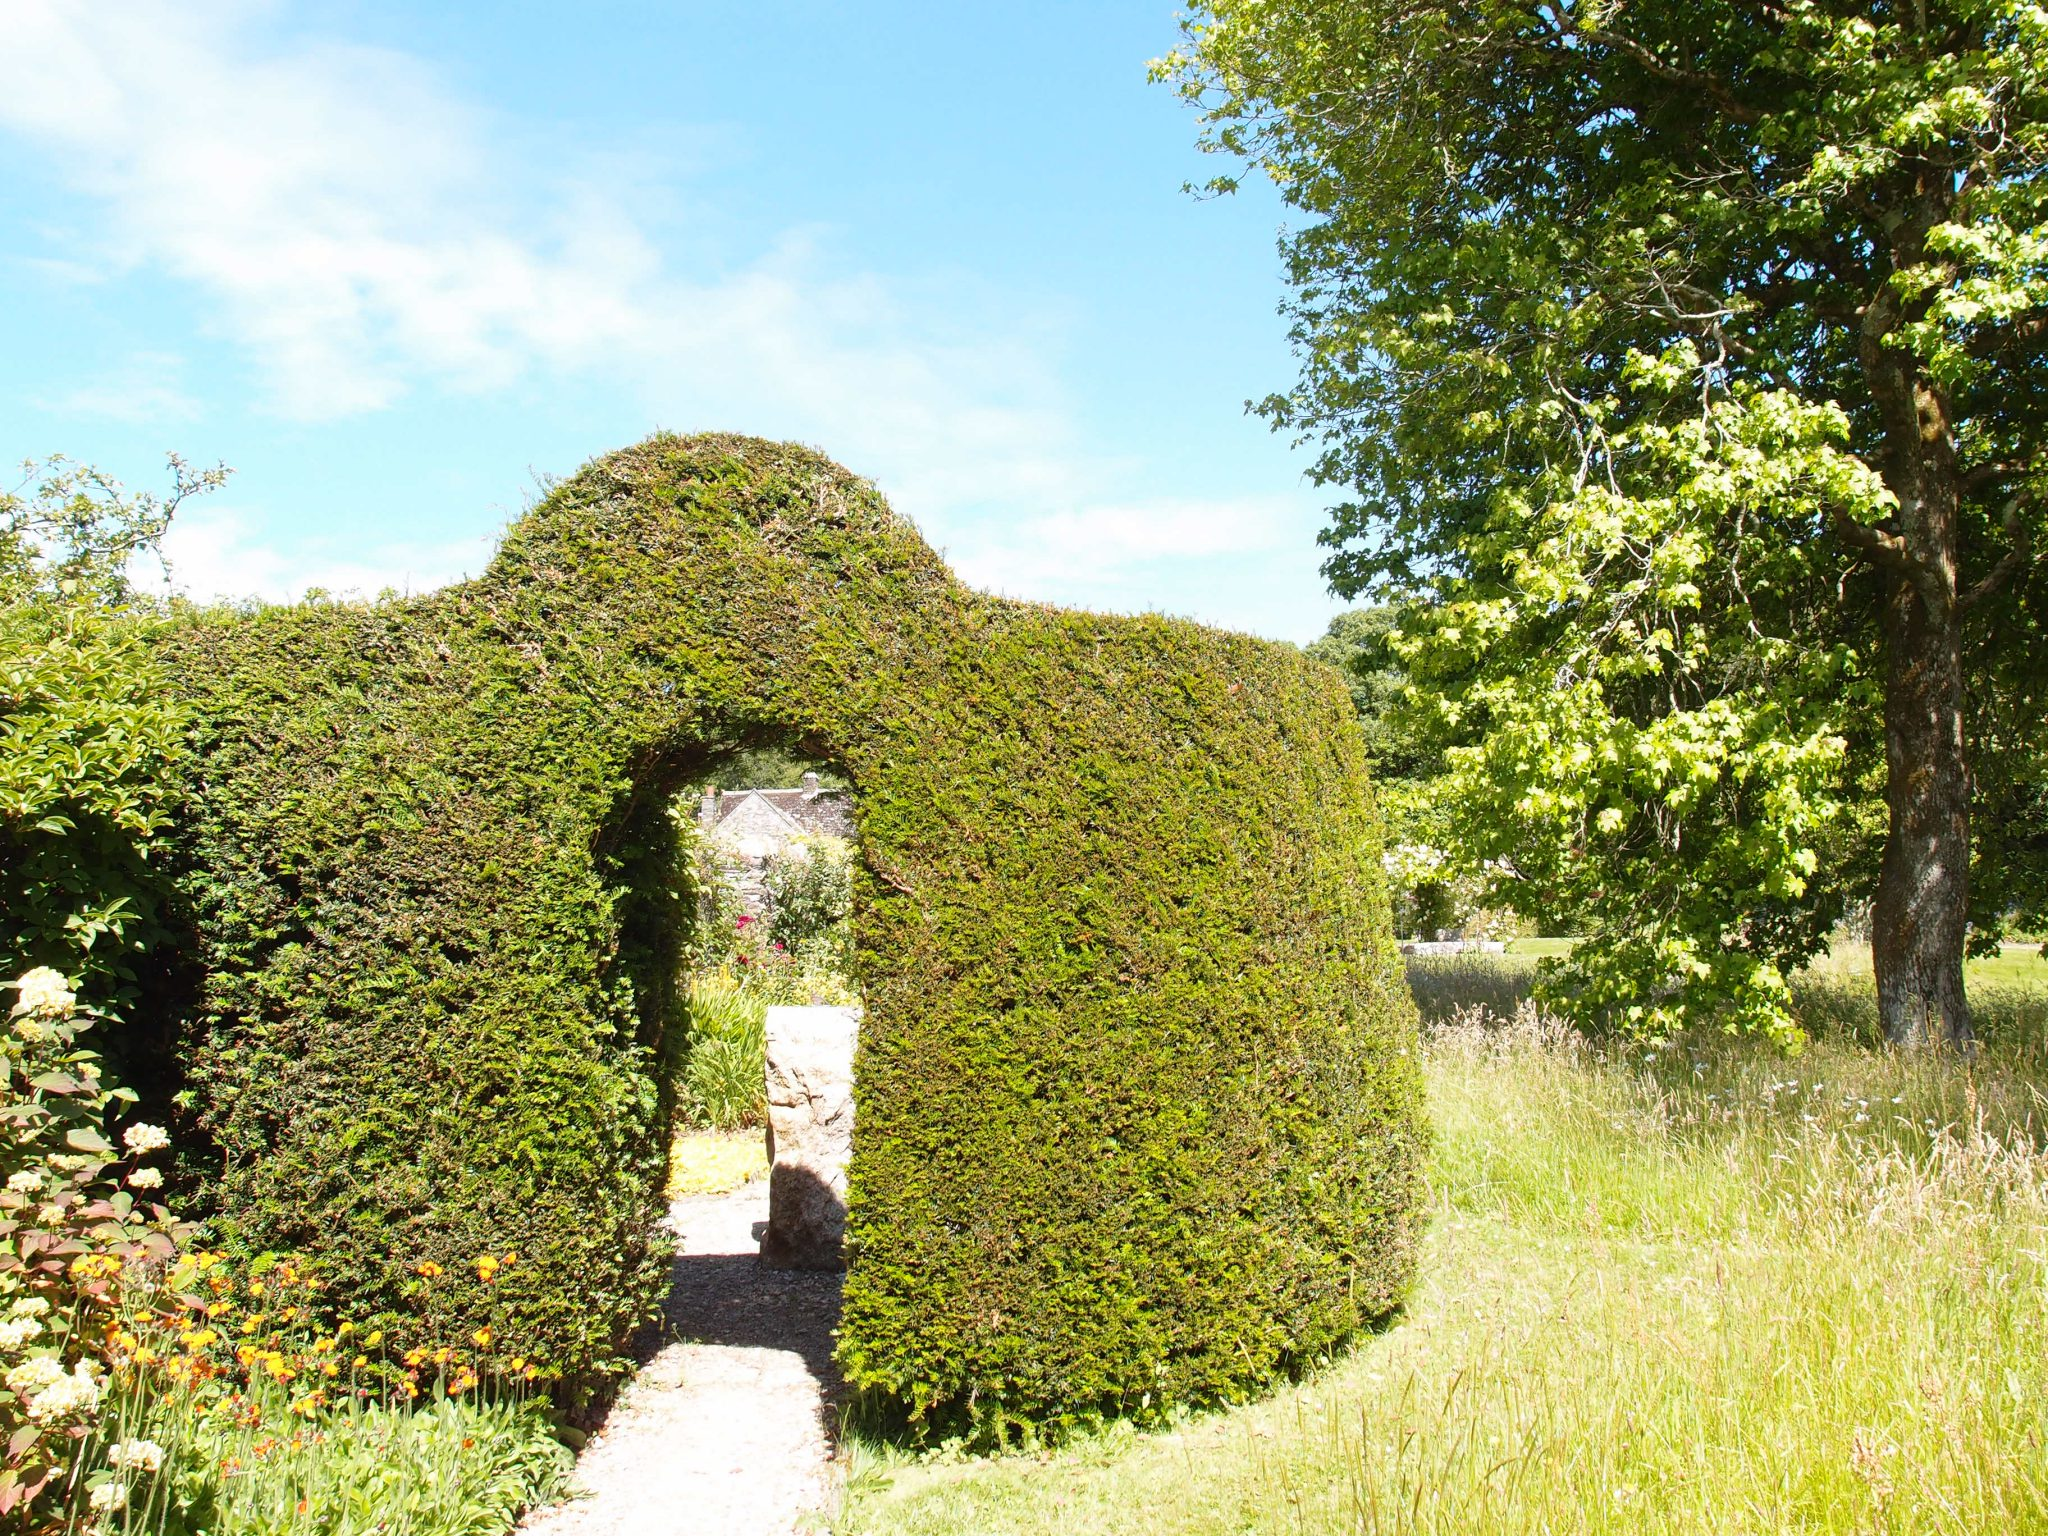 A green archway at the western end of the Cider House Garden